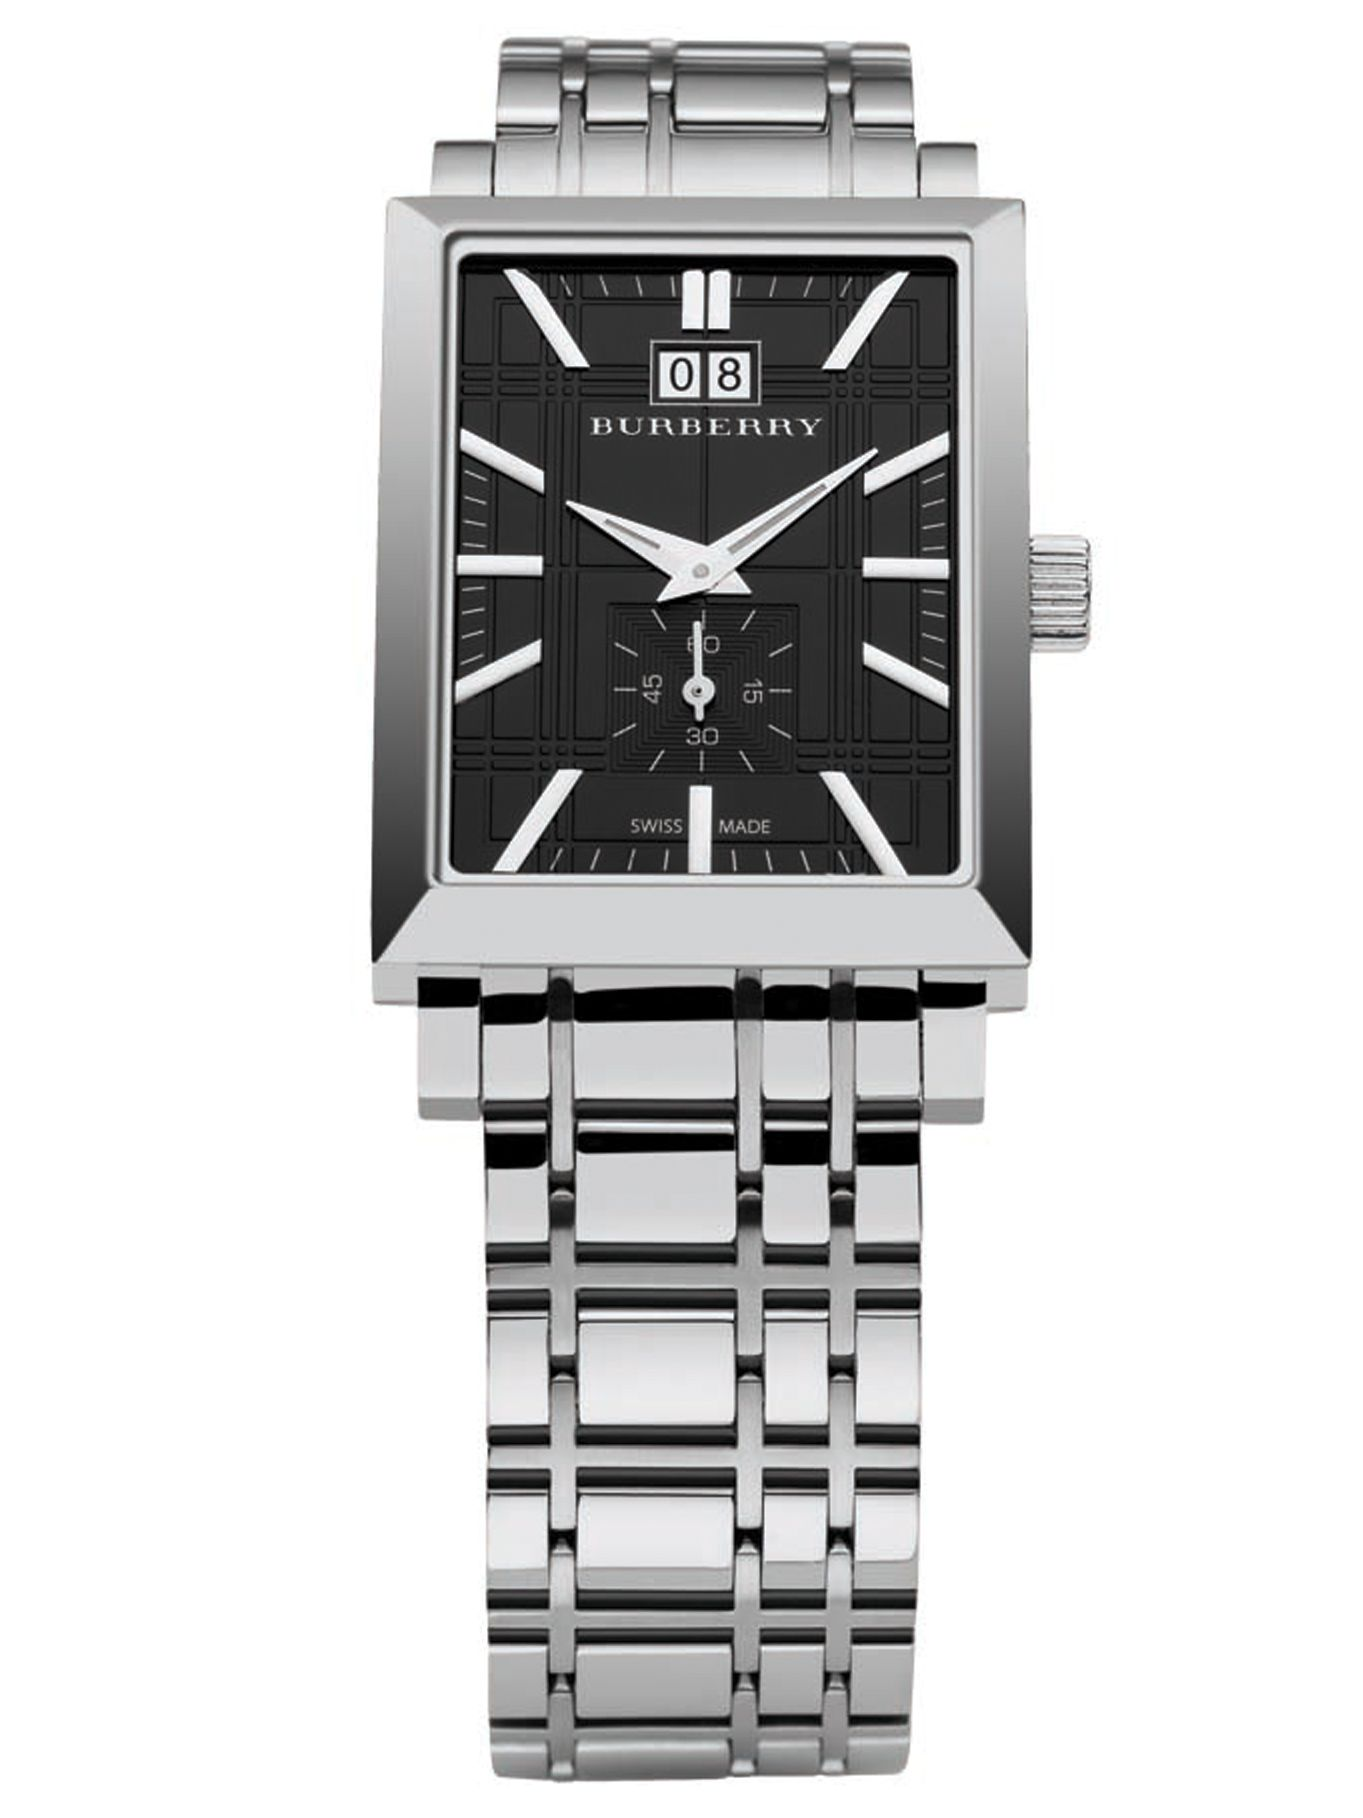 Classic stainless steel dress watch